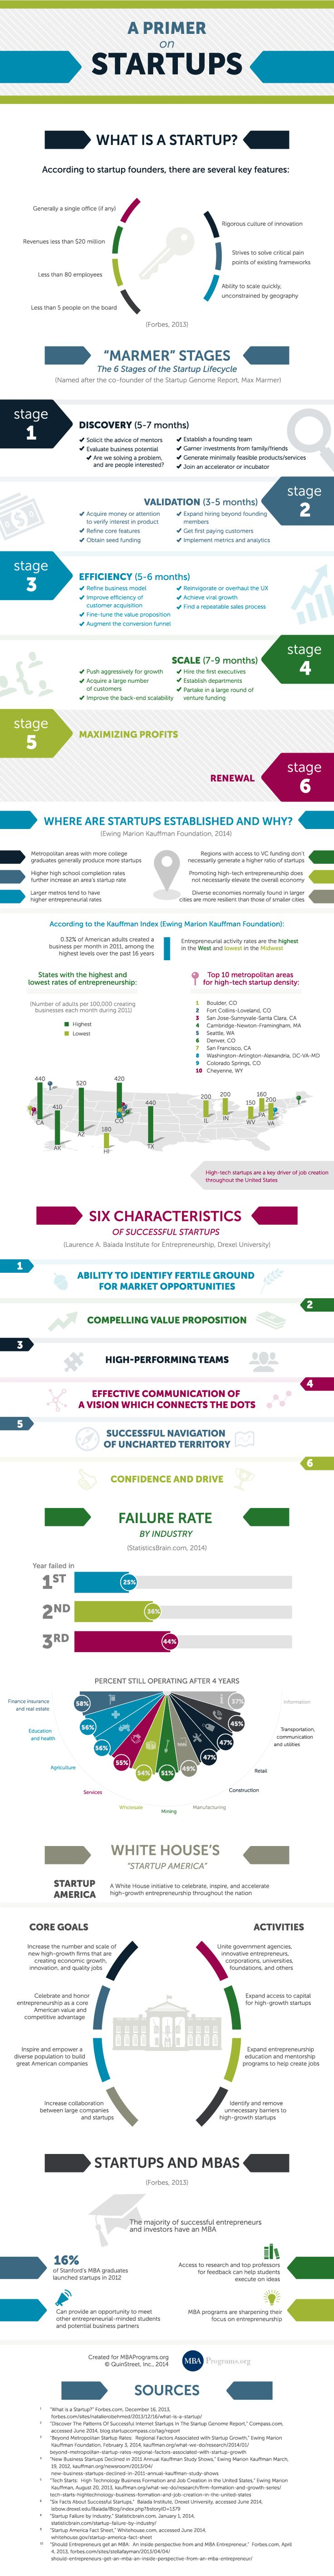 6 Characteristics of Successful Startups